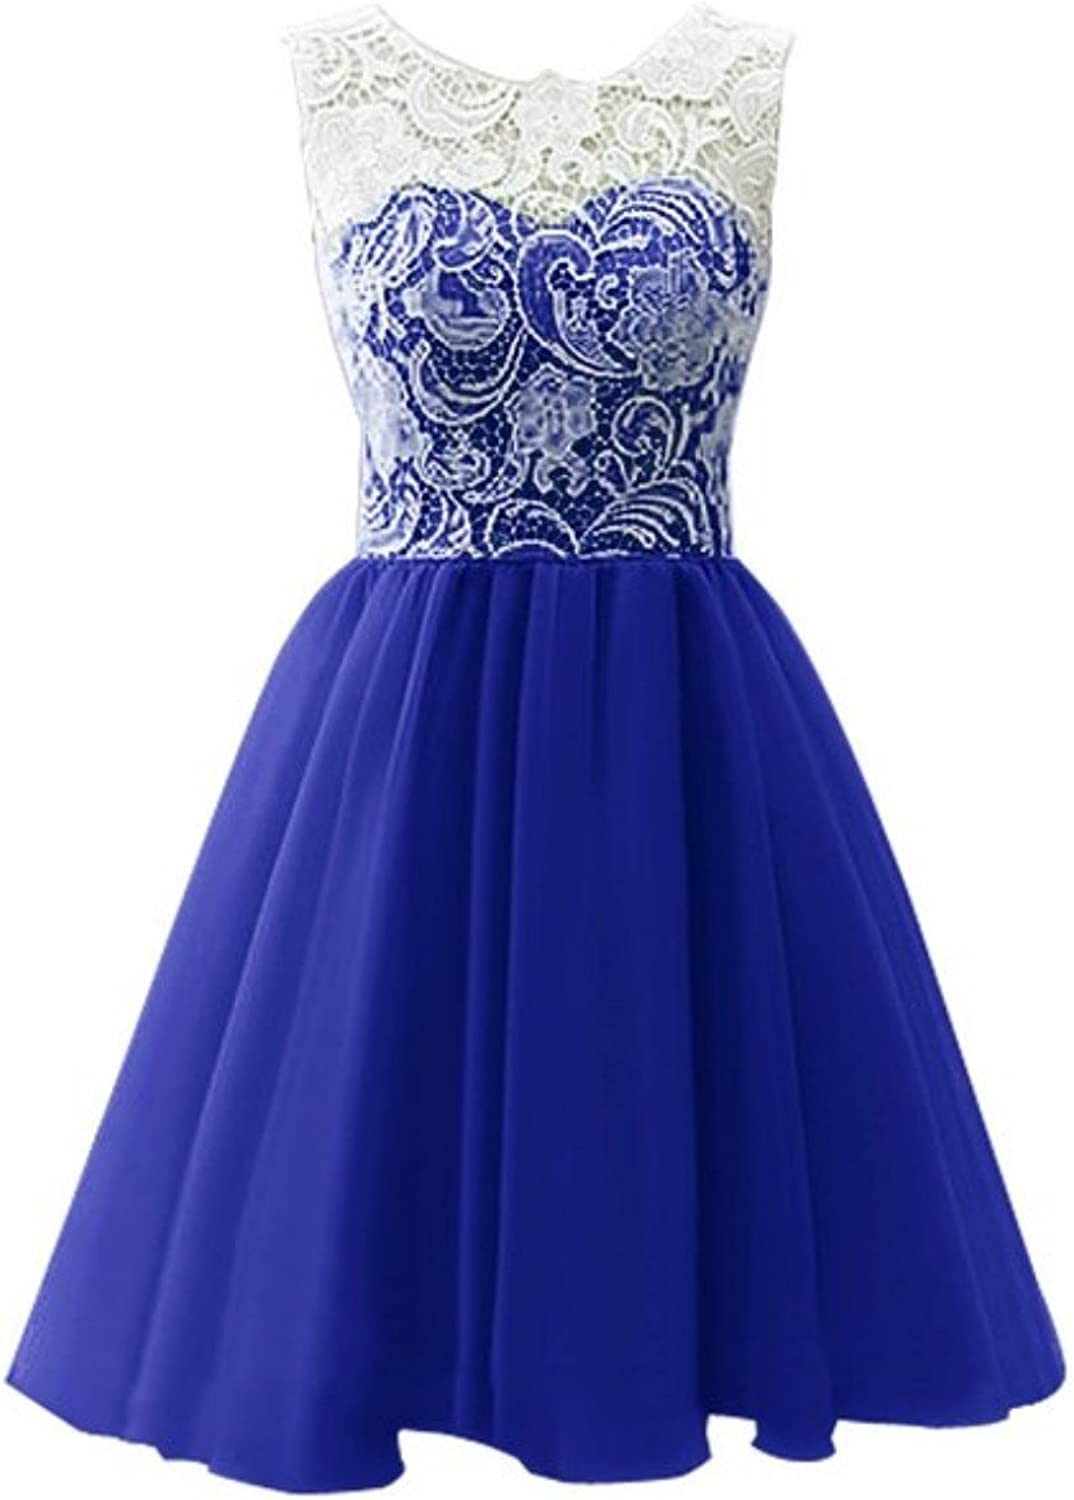 CCBubble Lace Homecoming Dresses O Neck Short Graduation Party DressRoyal bluee8